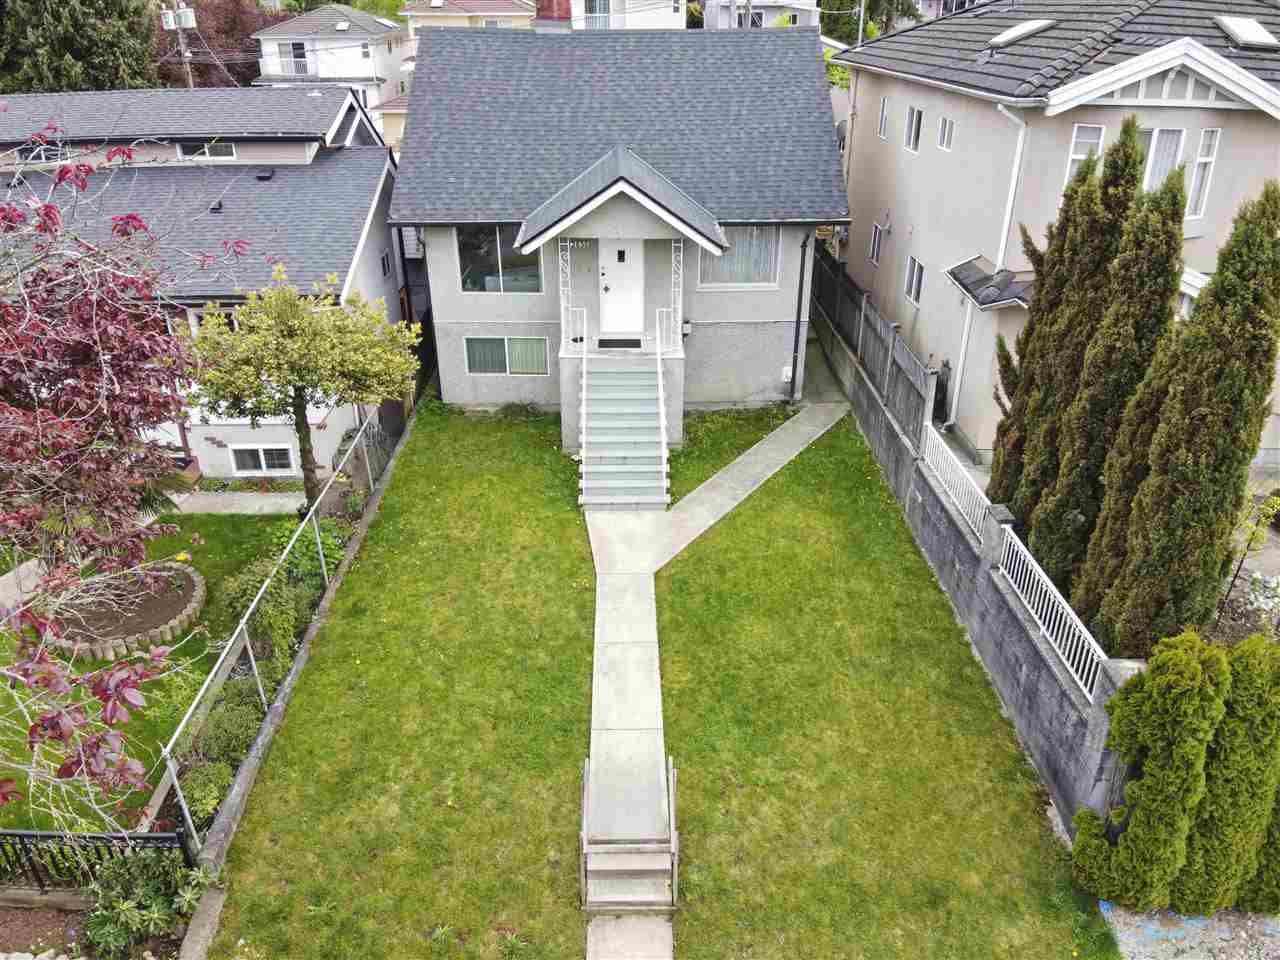 Main Photo: 2858 E 4TH Avenue in Vancouver: Renfrew VE House for sale (Vancouver East)  : MLS®# R2454595